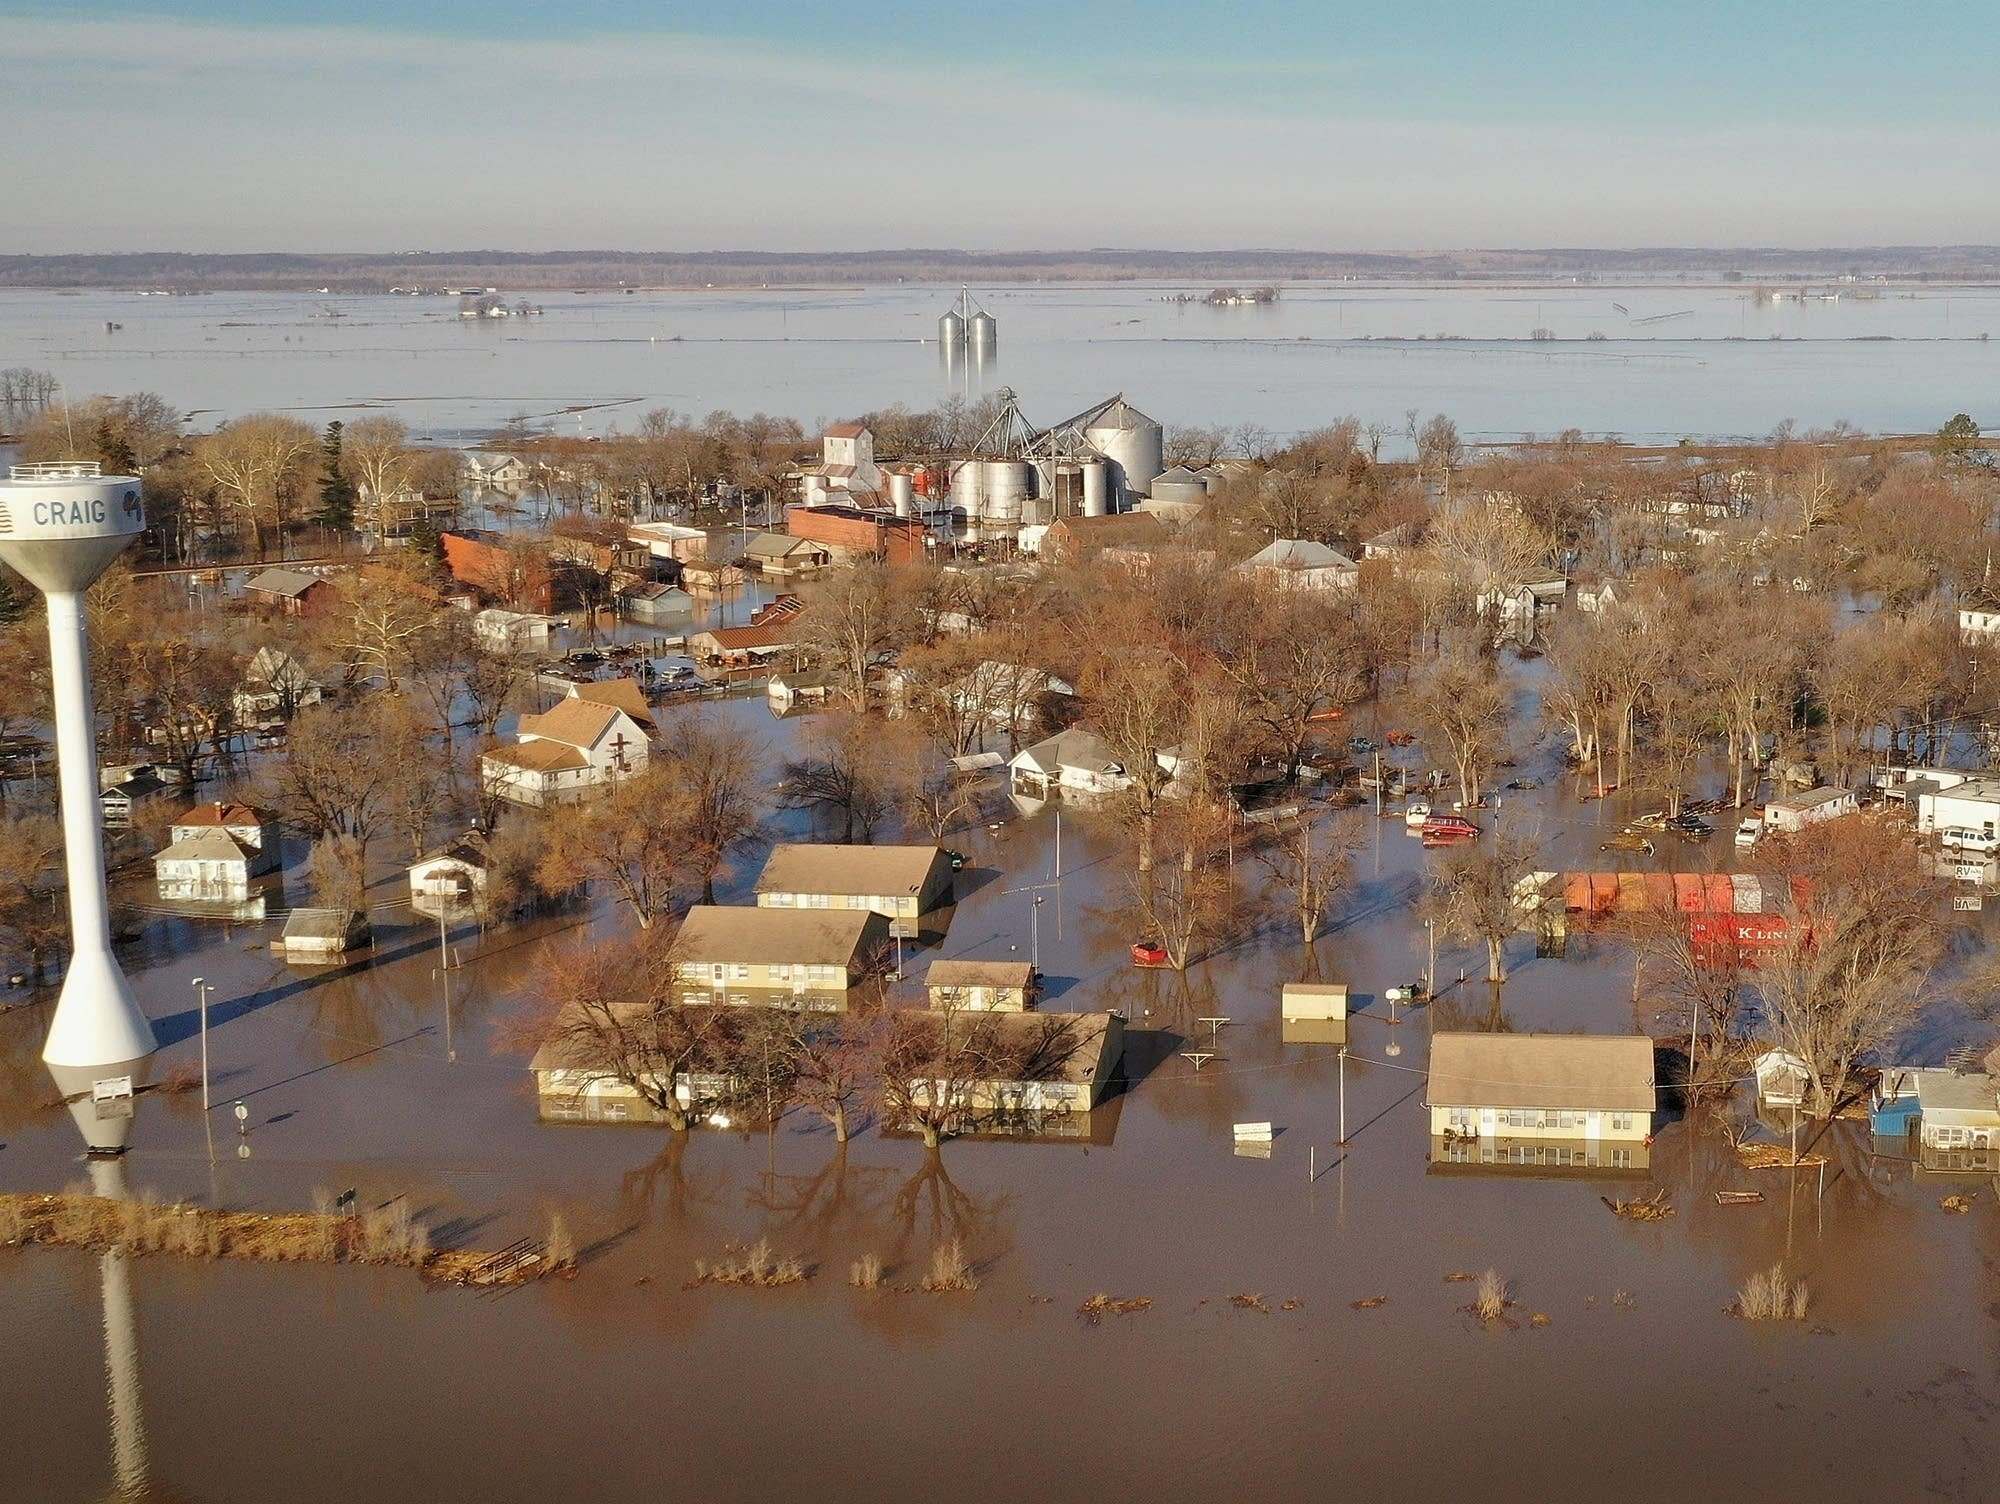 Floodwaters inundate the town of Craig, Mo.